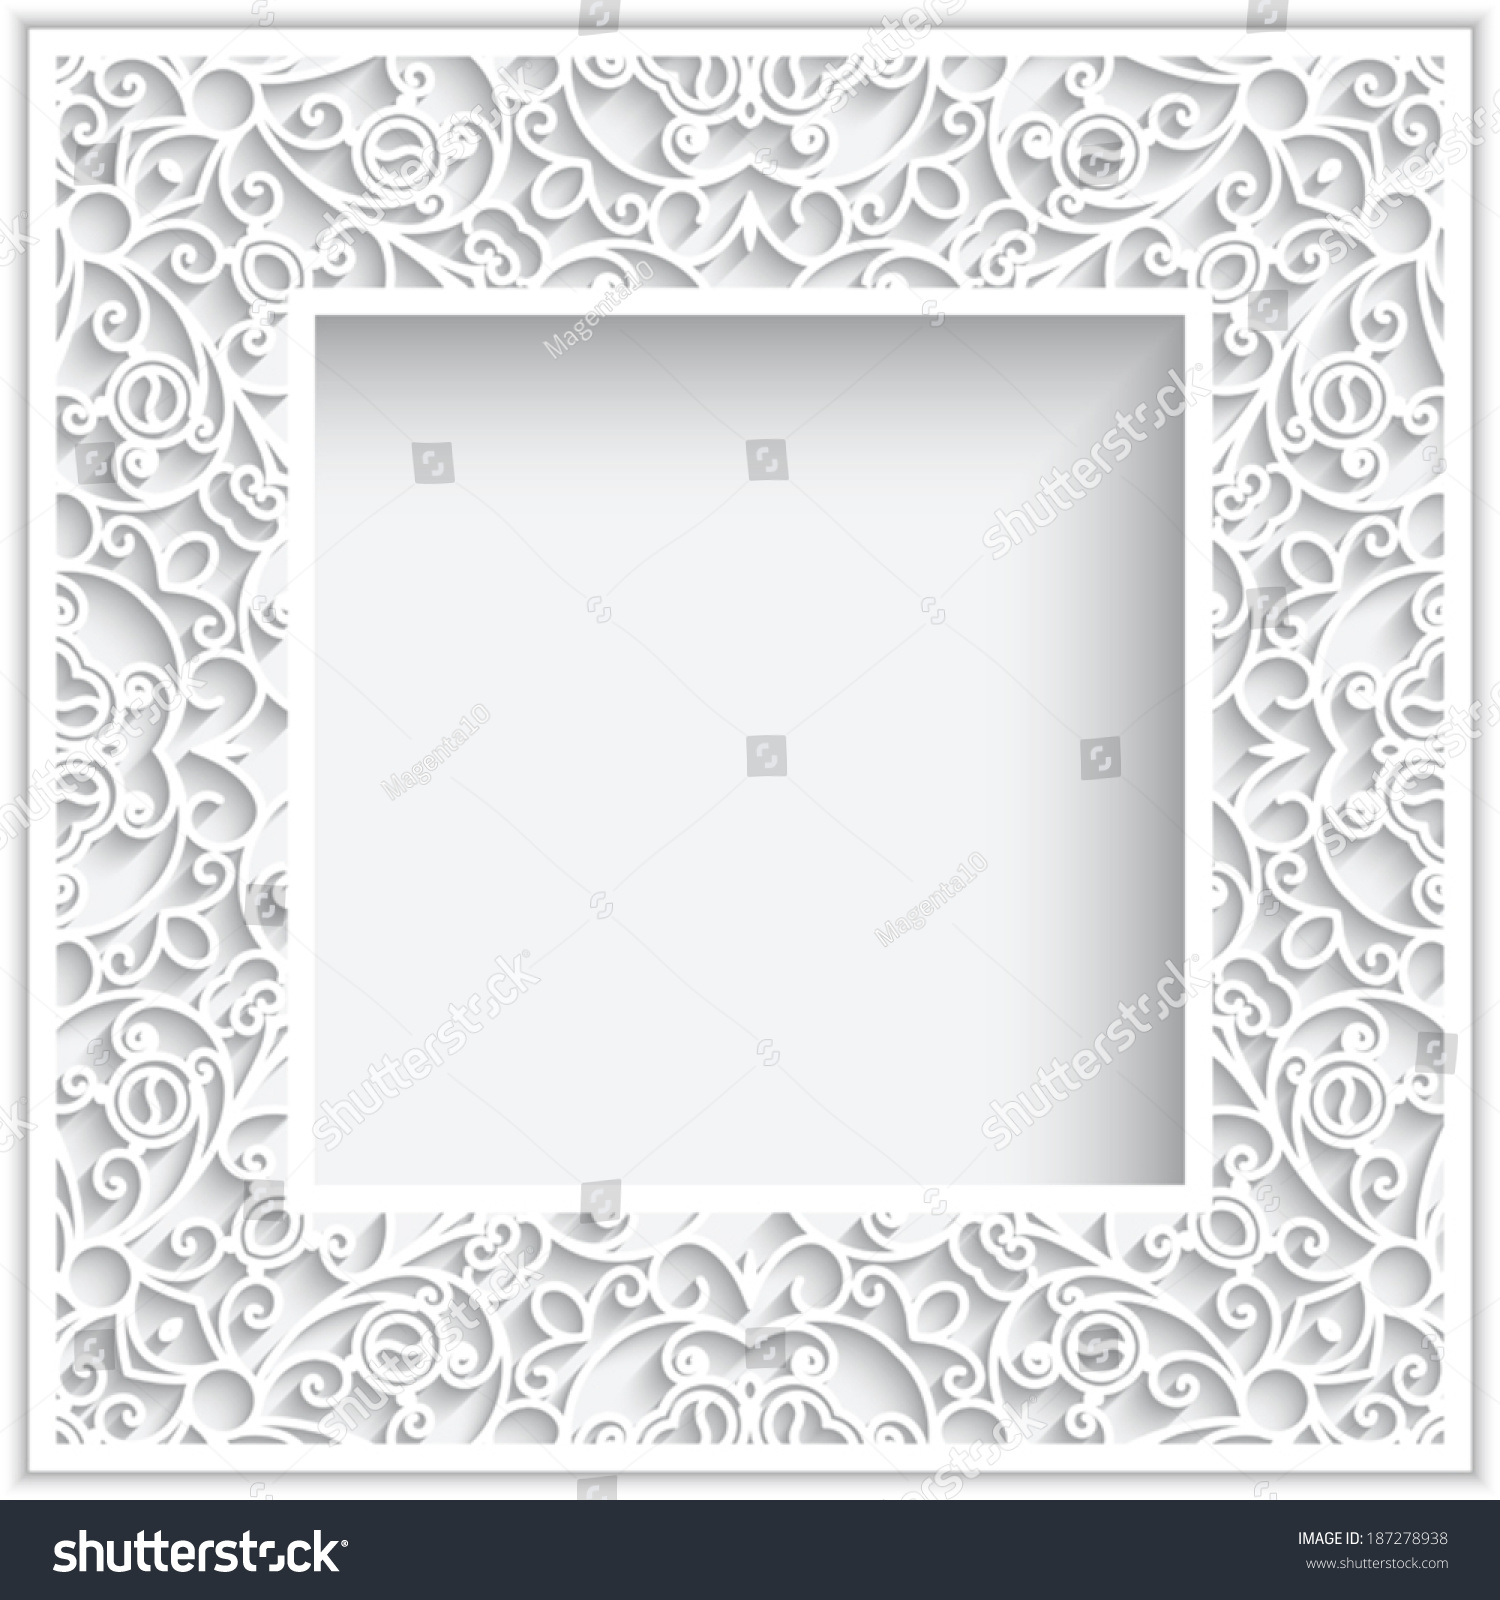 abstract square frame with paper swirls vector ornamental background eps10